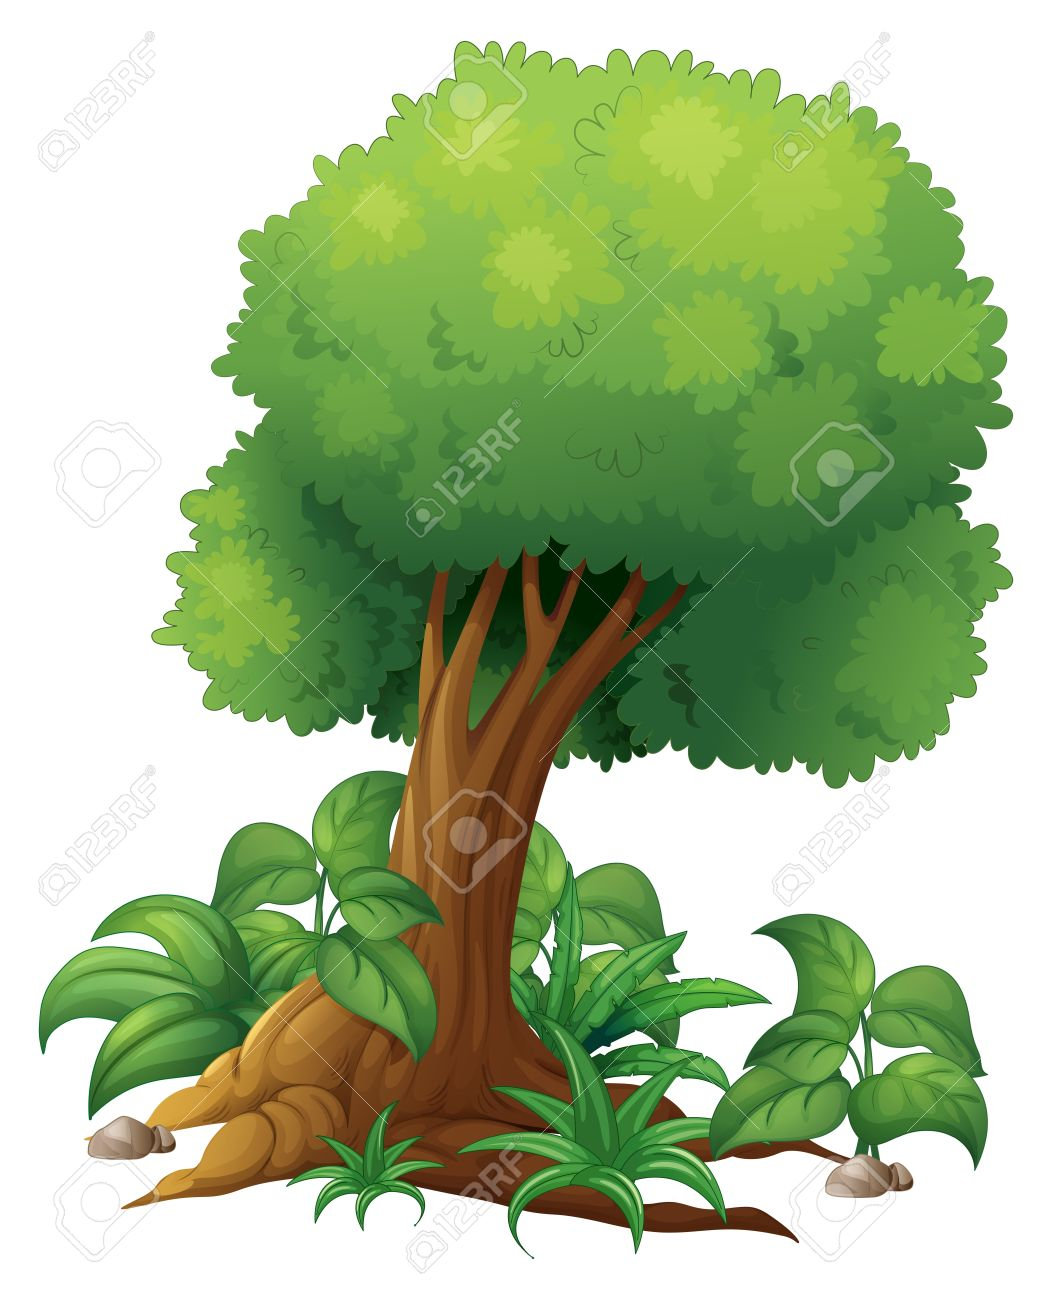 Illustration Of A Big Tree On A White Background Royalty Free.